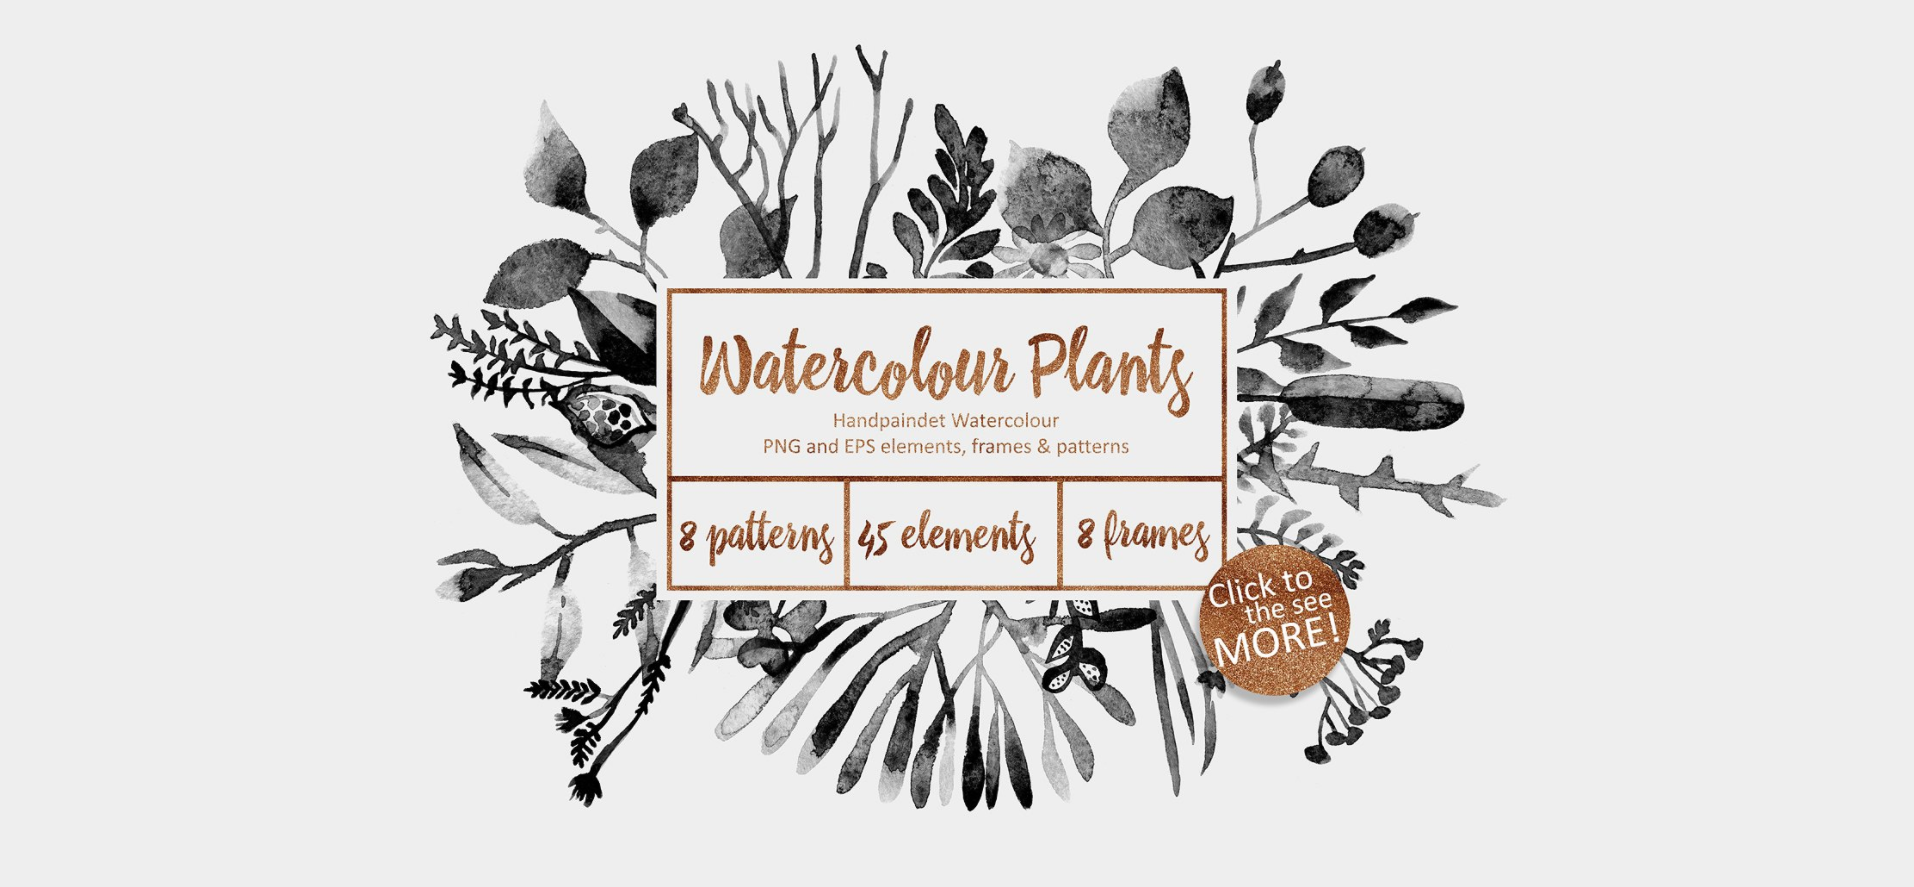 Watercolor Plants by Creative Market